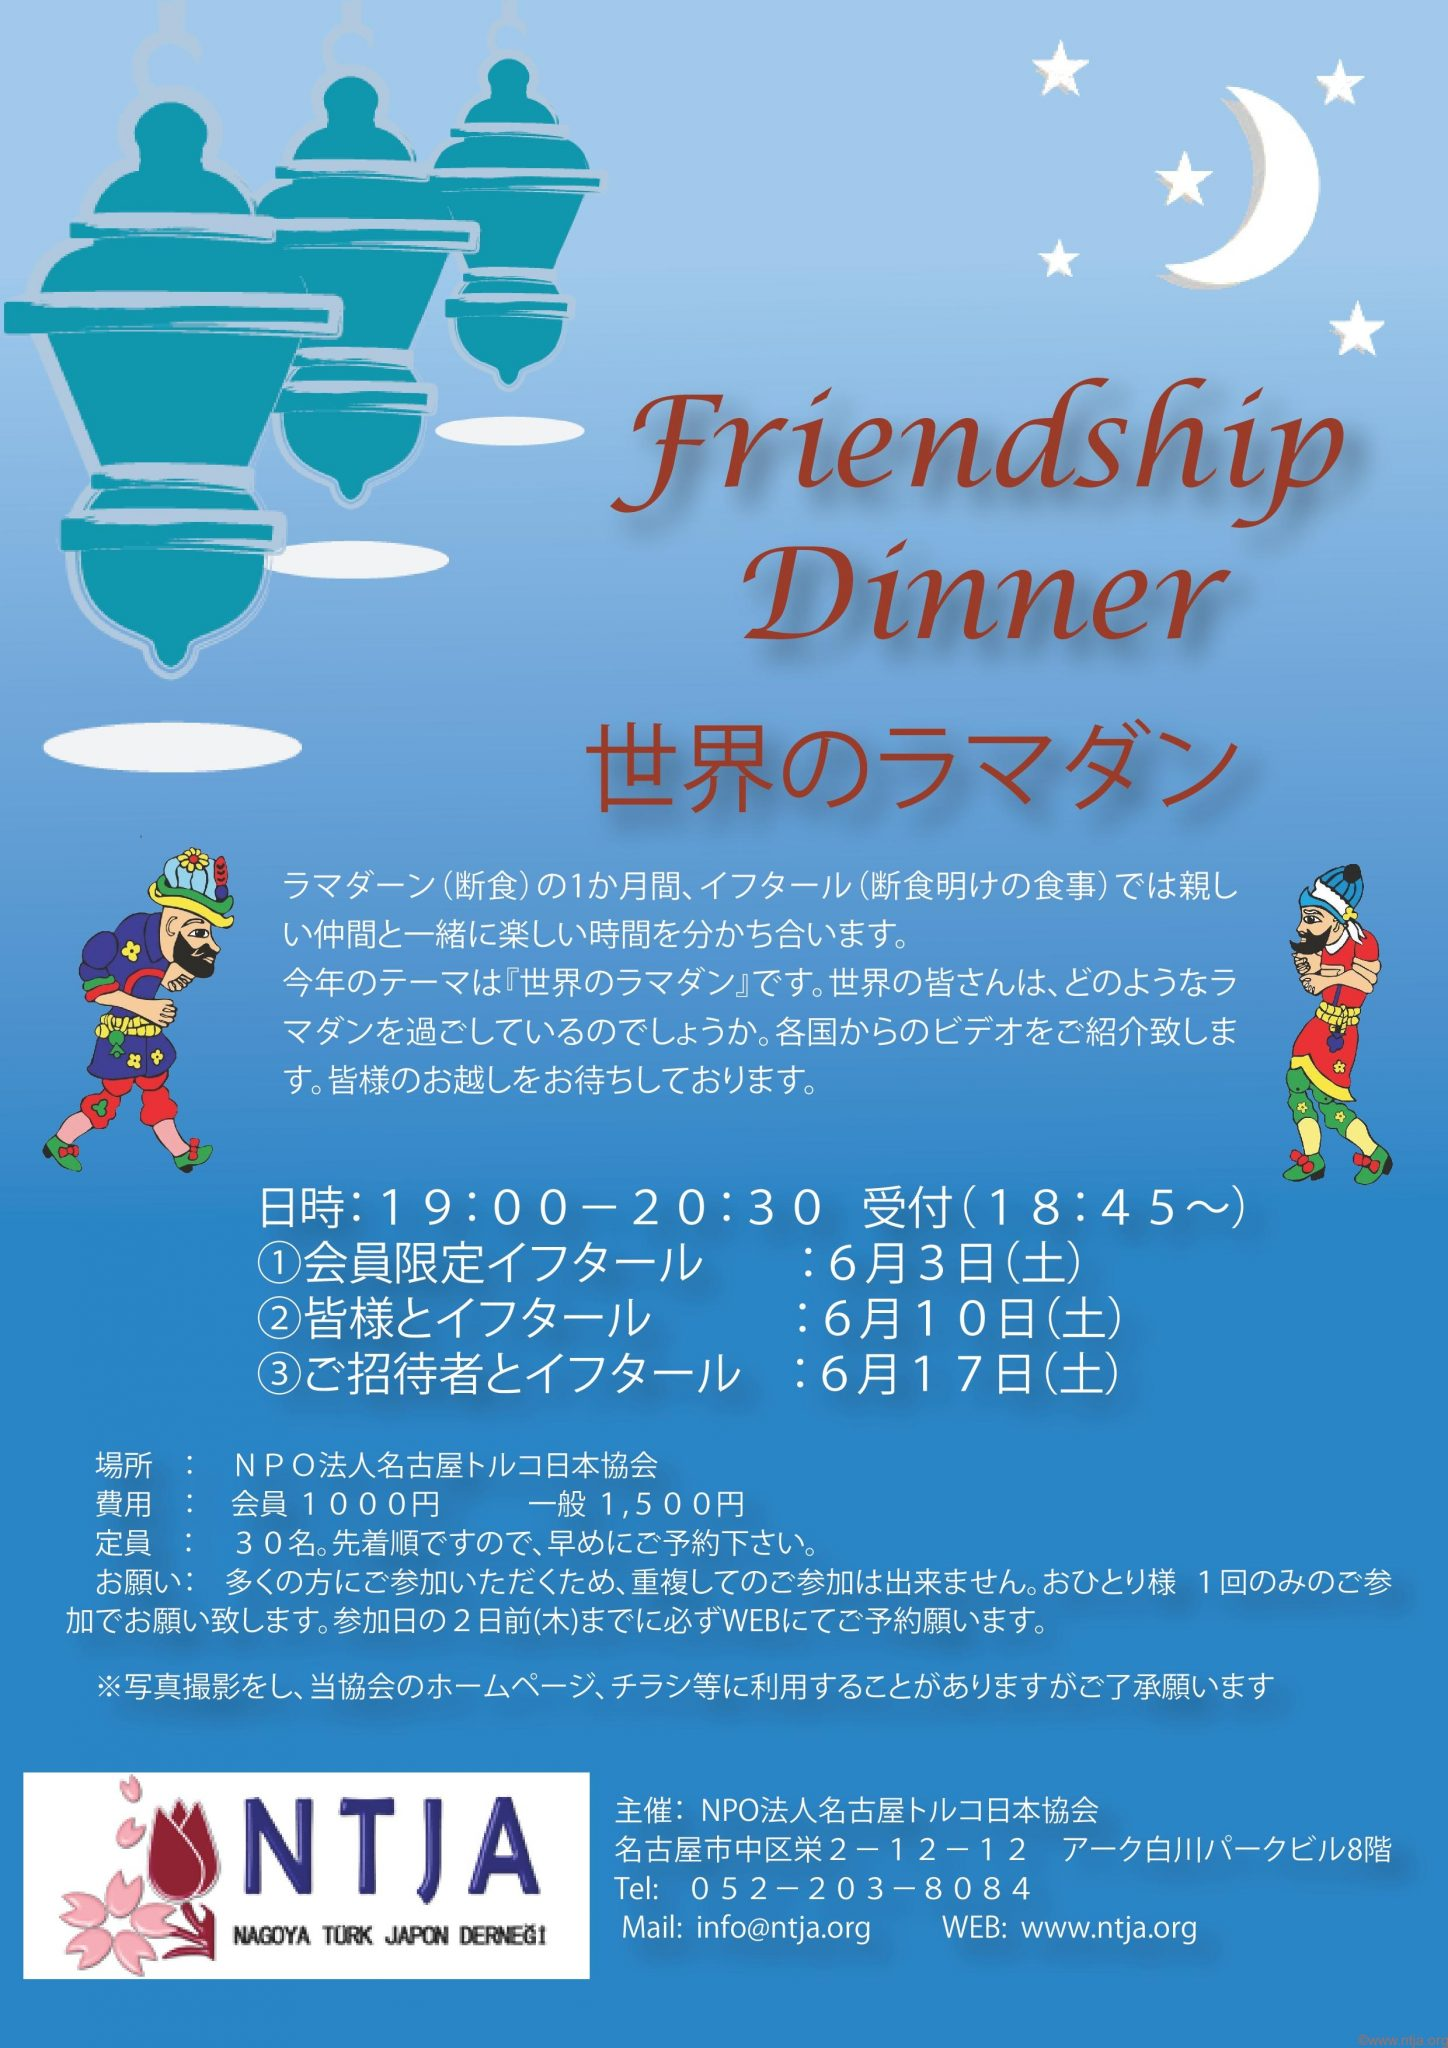 Friendship Dinner